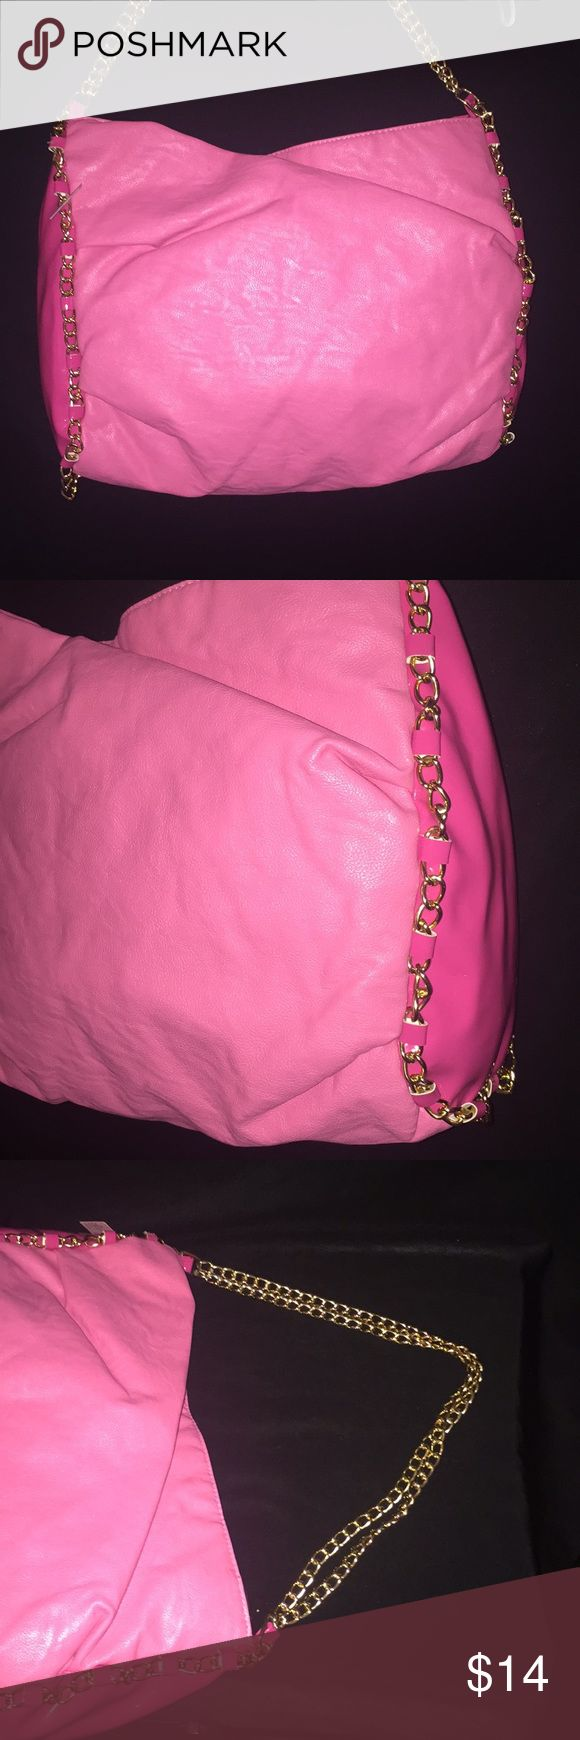 "Fashion Pink bag purse - gold rope chain Pink fashion gold chain purse- great used condition   Across 16""  By 11"" Bags"